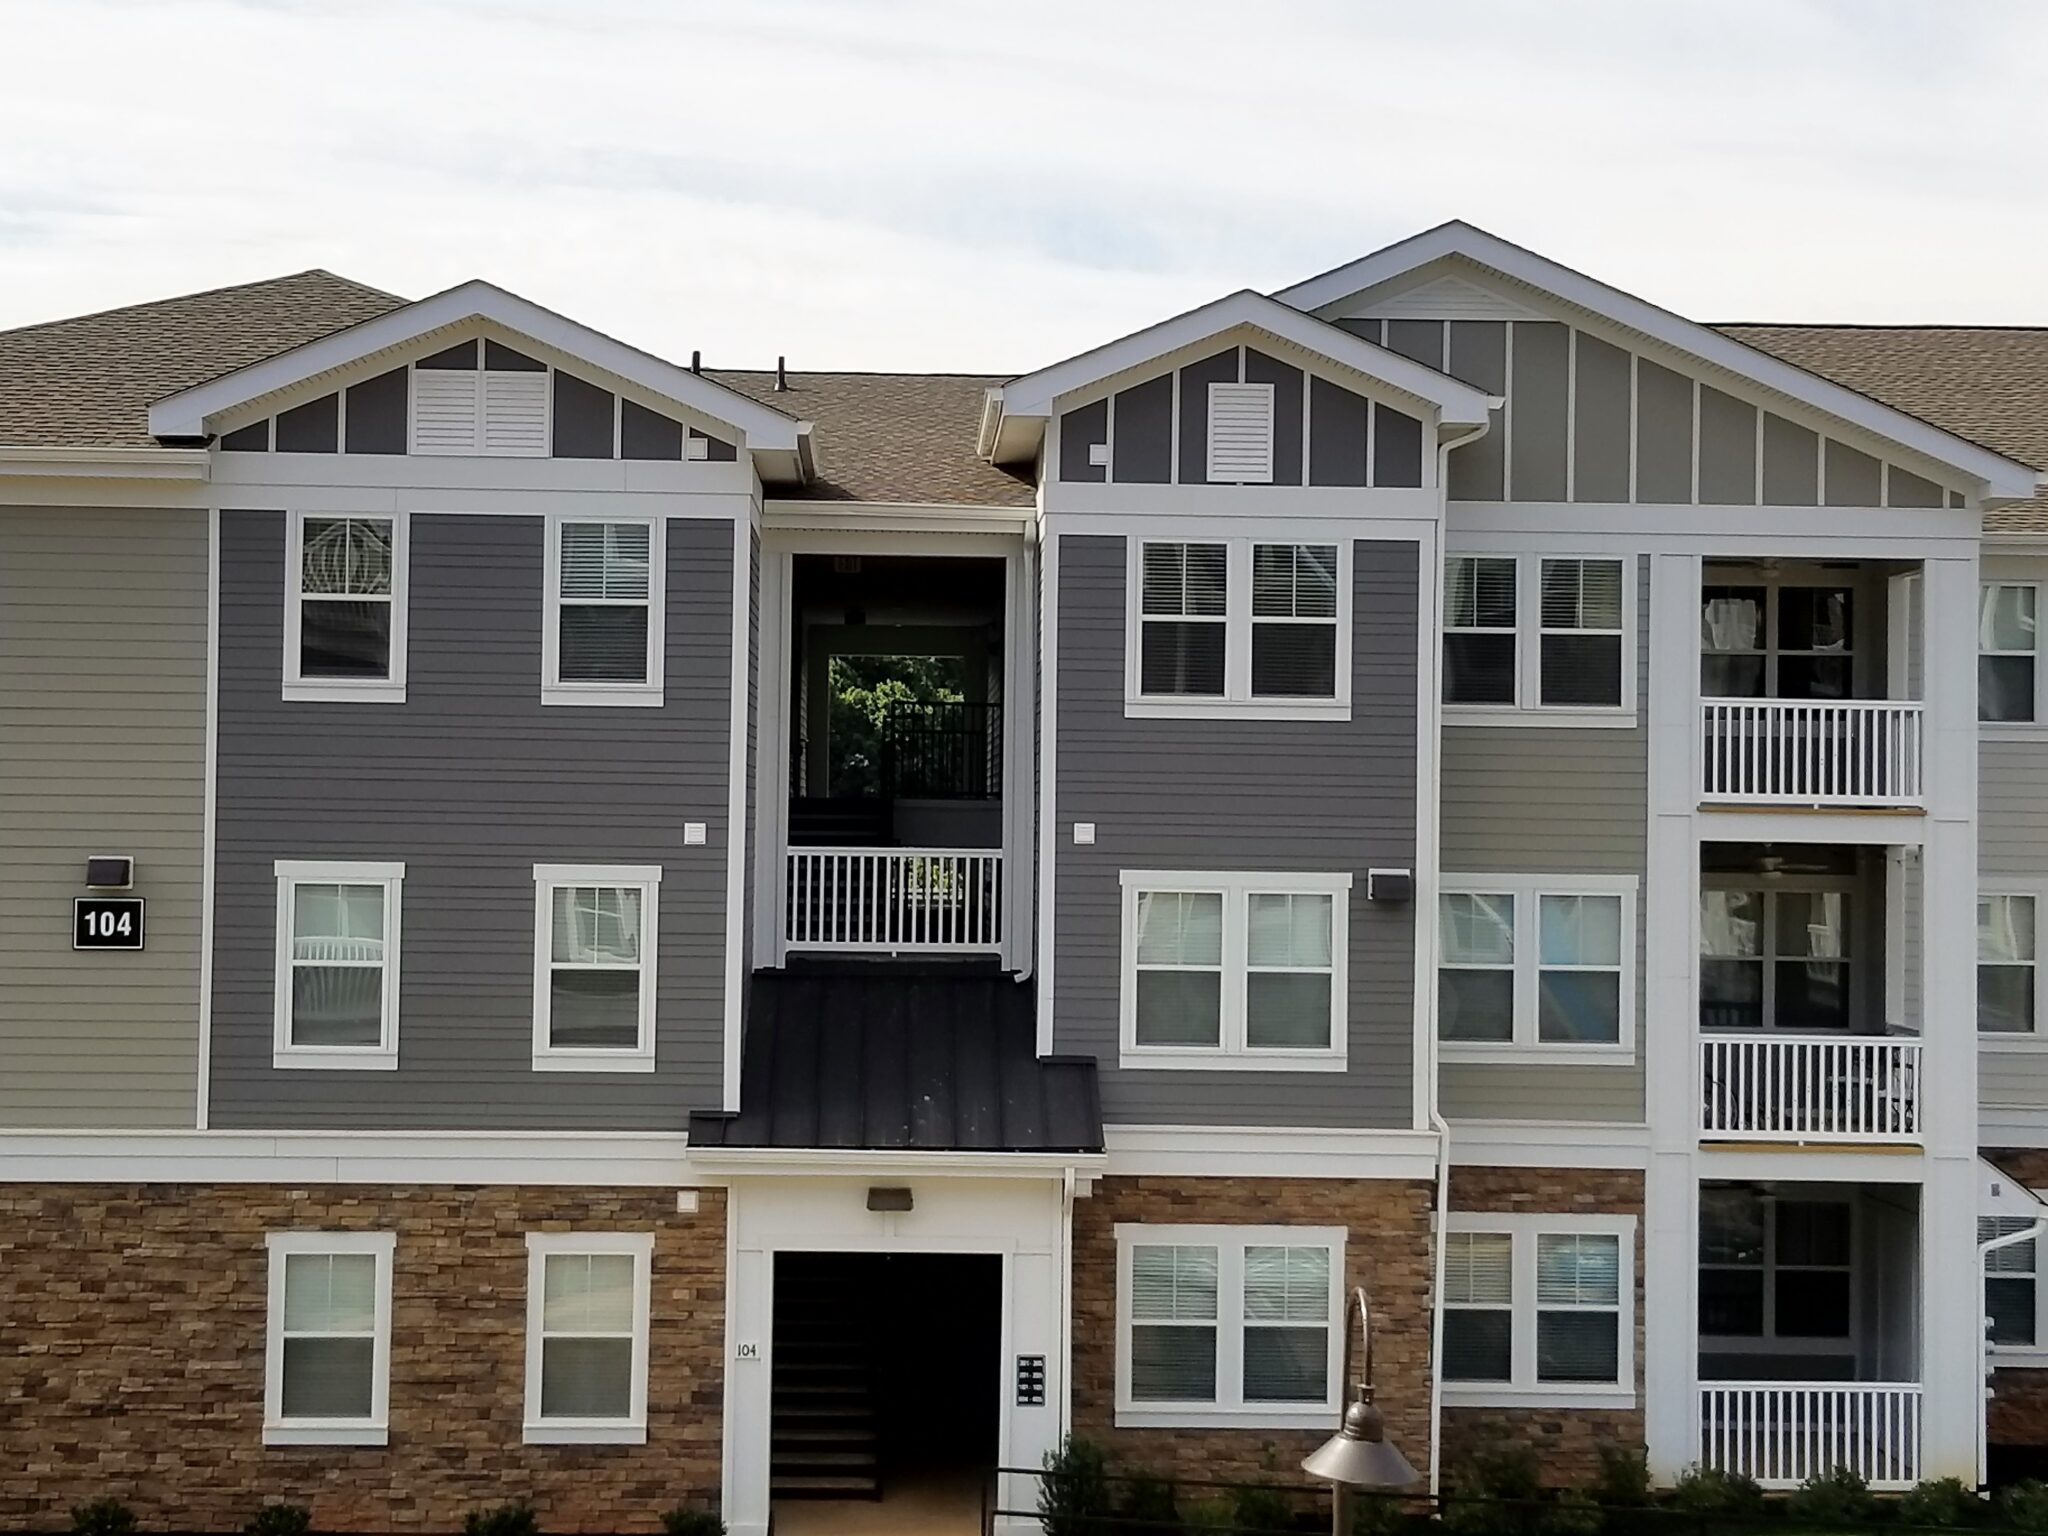 Johnson Village is a new construction multifamily development located in Charlottesville Virginia.